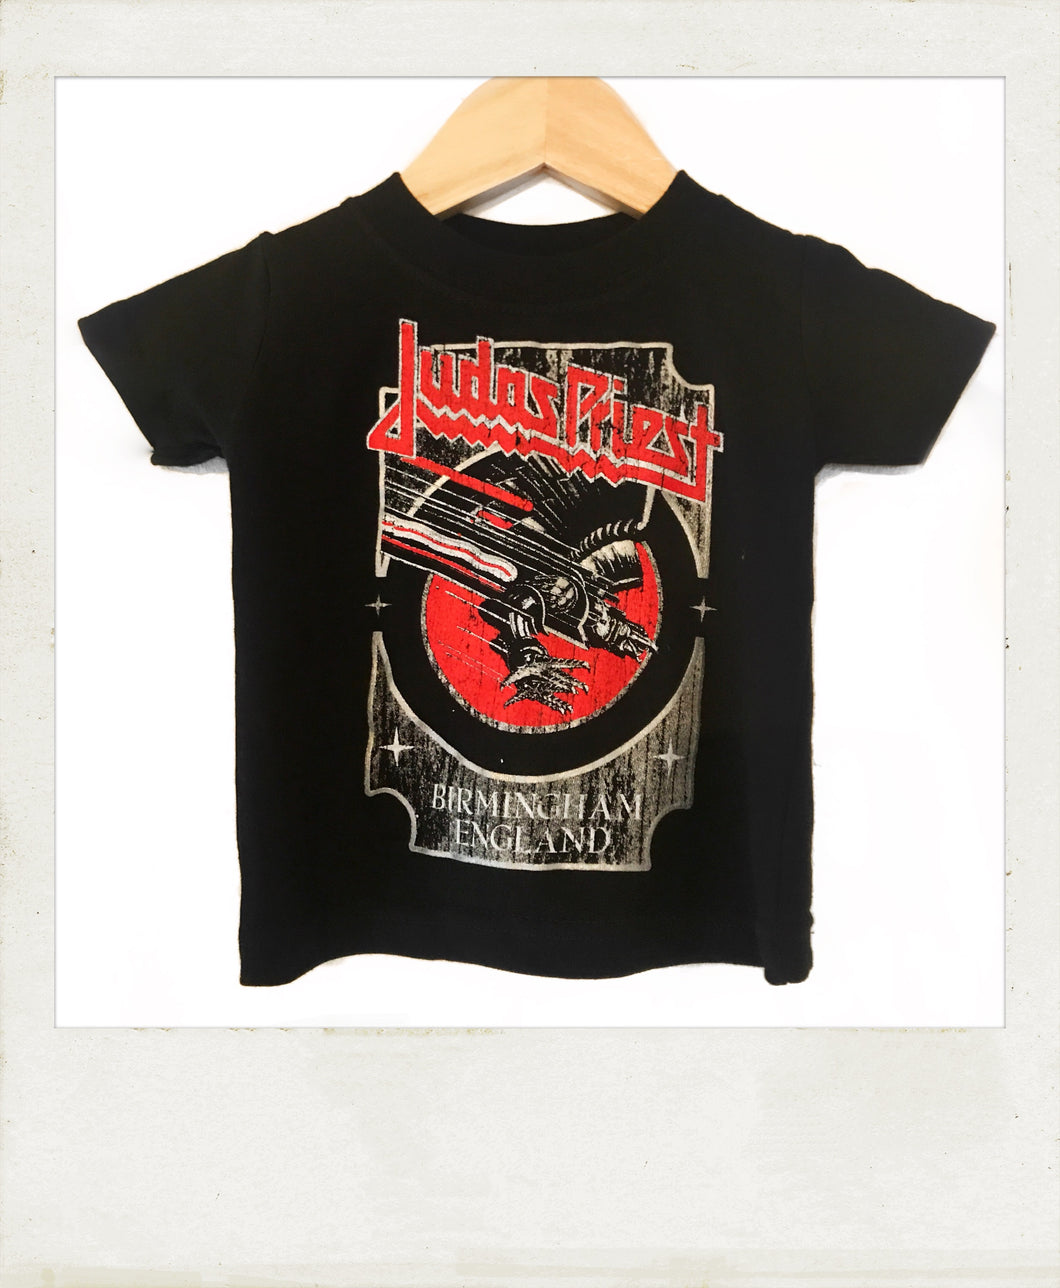 Judas Priest baby T